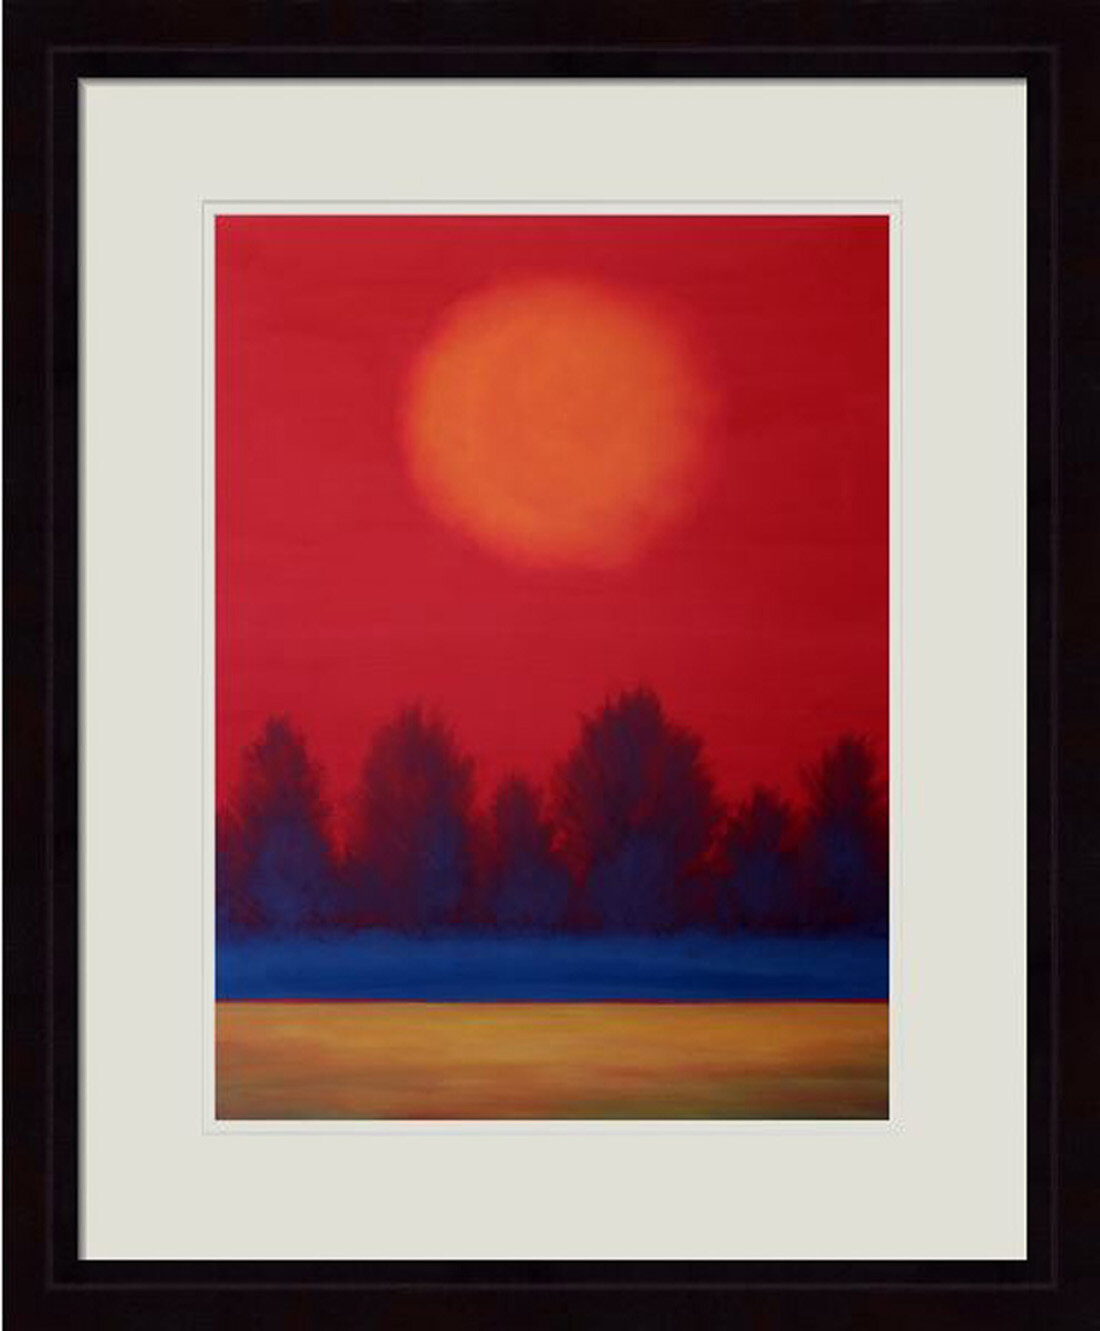 Hadleyhouseco Summer Solstice By Daniel Lager Framed Painting Print Wayfair